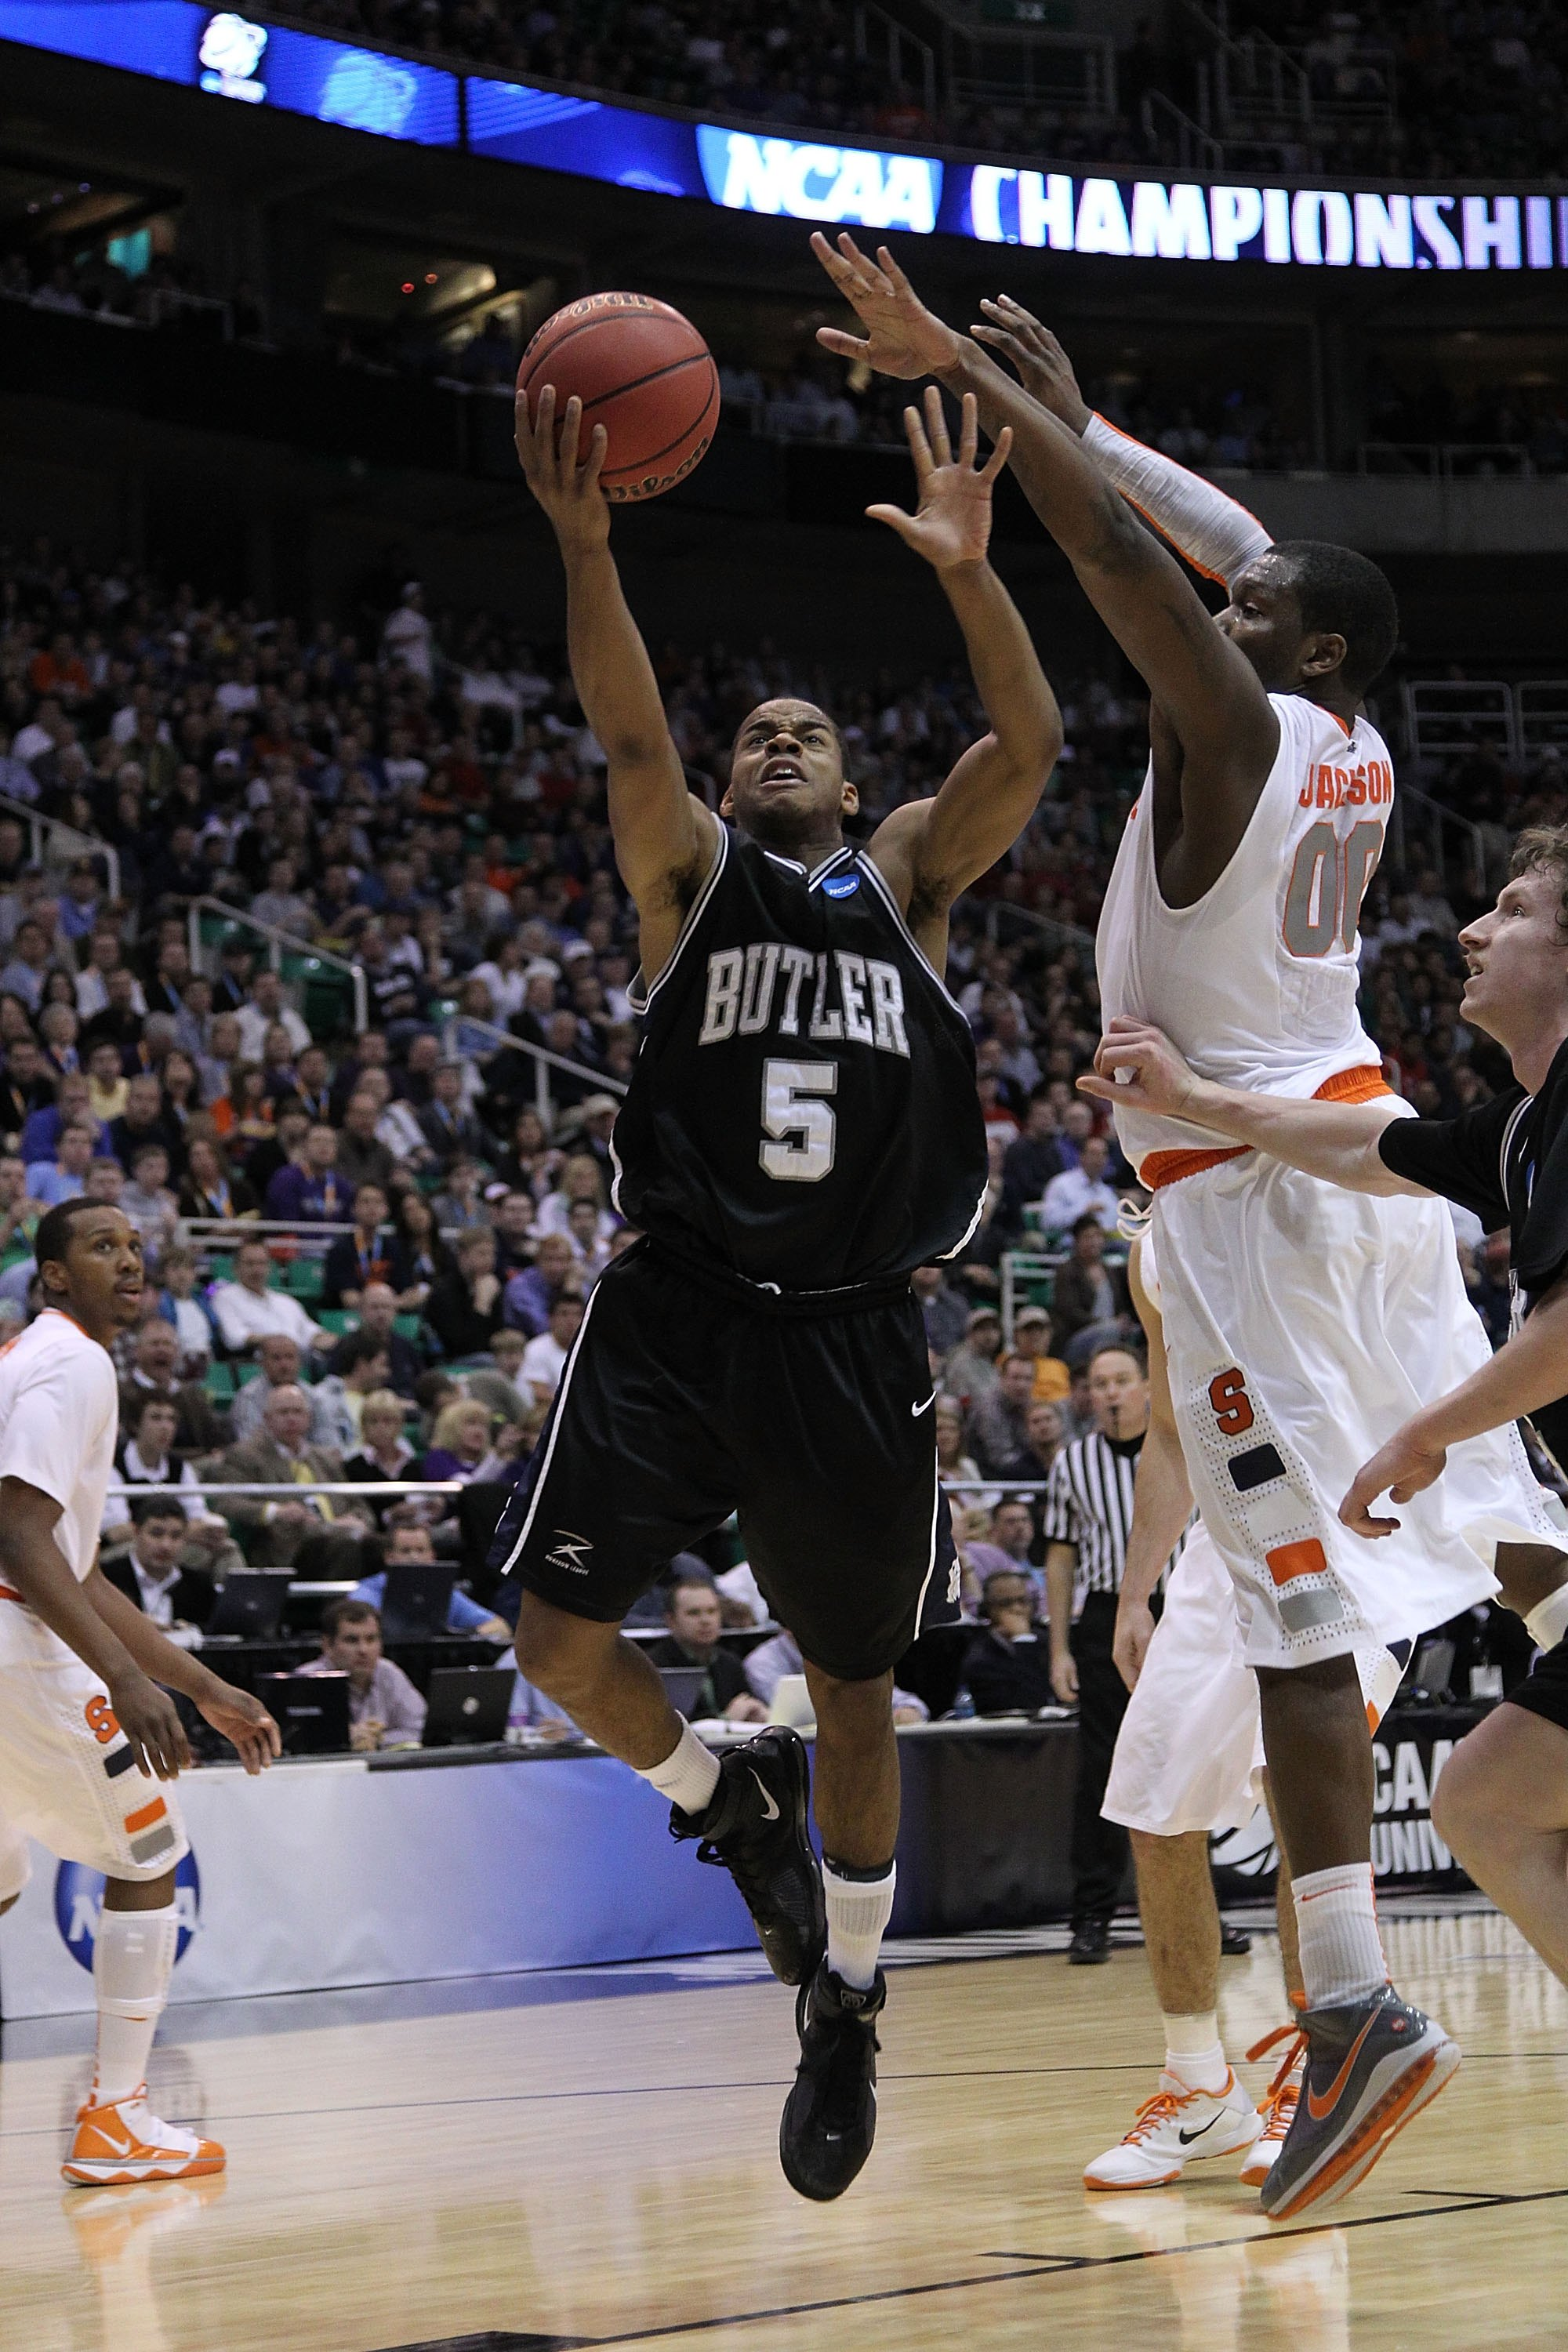 SALT LAKE CITY - MARCH 25:  Ronald Nored #5 of the Butler Bulldogs in action against the Syracuse Orange during the west regional semifinal of the 2010 NCAA men's basketball tournament at the Energy Solutions Arena on March 25, 2010 in Salt Lake City, Uta